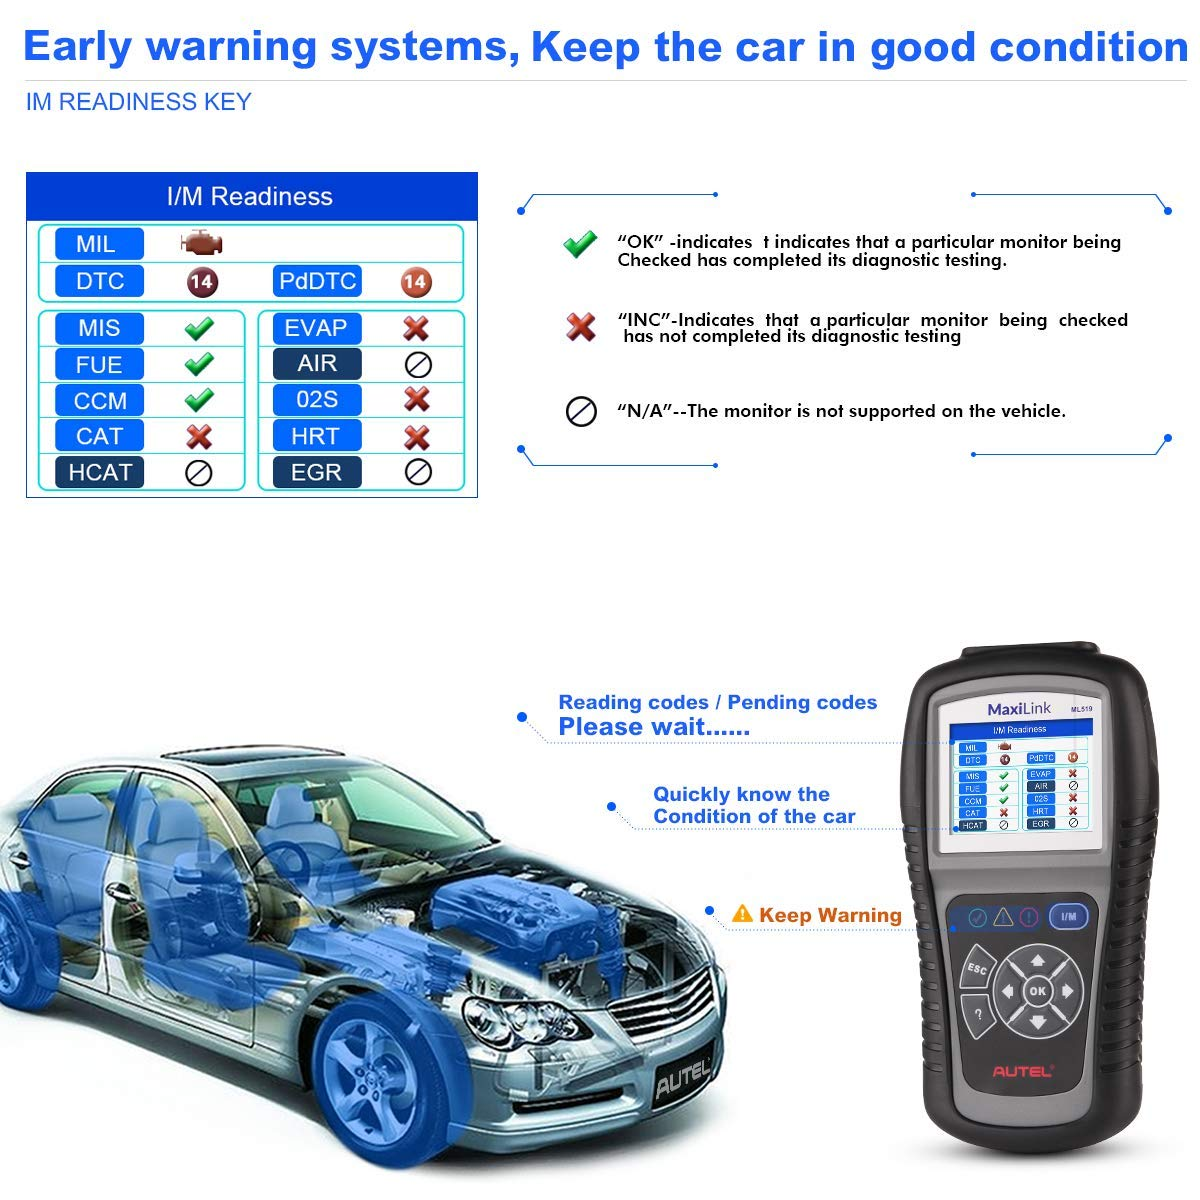 Autel MaxiLink ML519 OBDII/EOBD Scanner Enhanced OBD II Mode 6,Code Reader with The Same Function as al519 by Autel (Image #3)